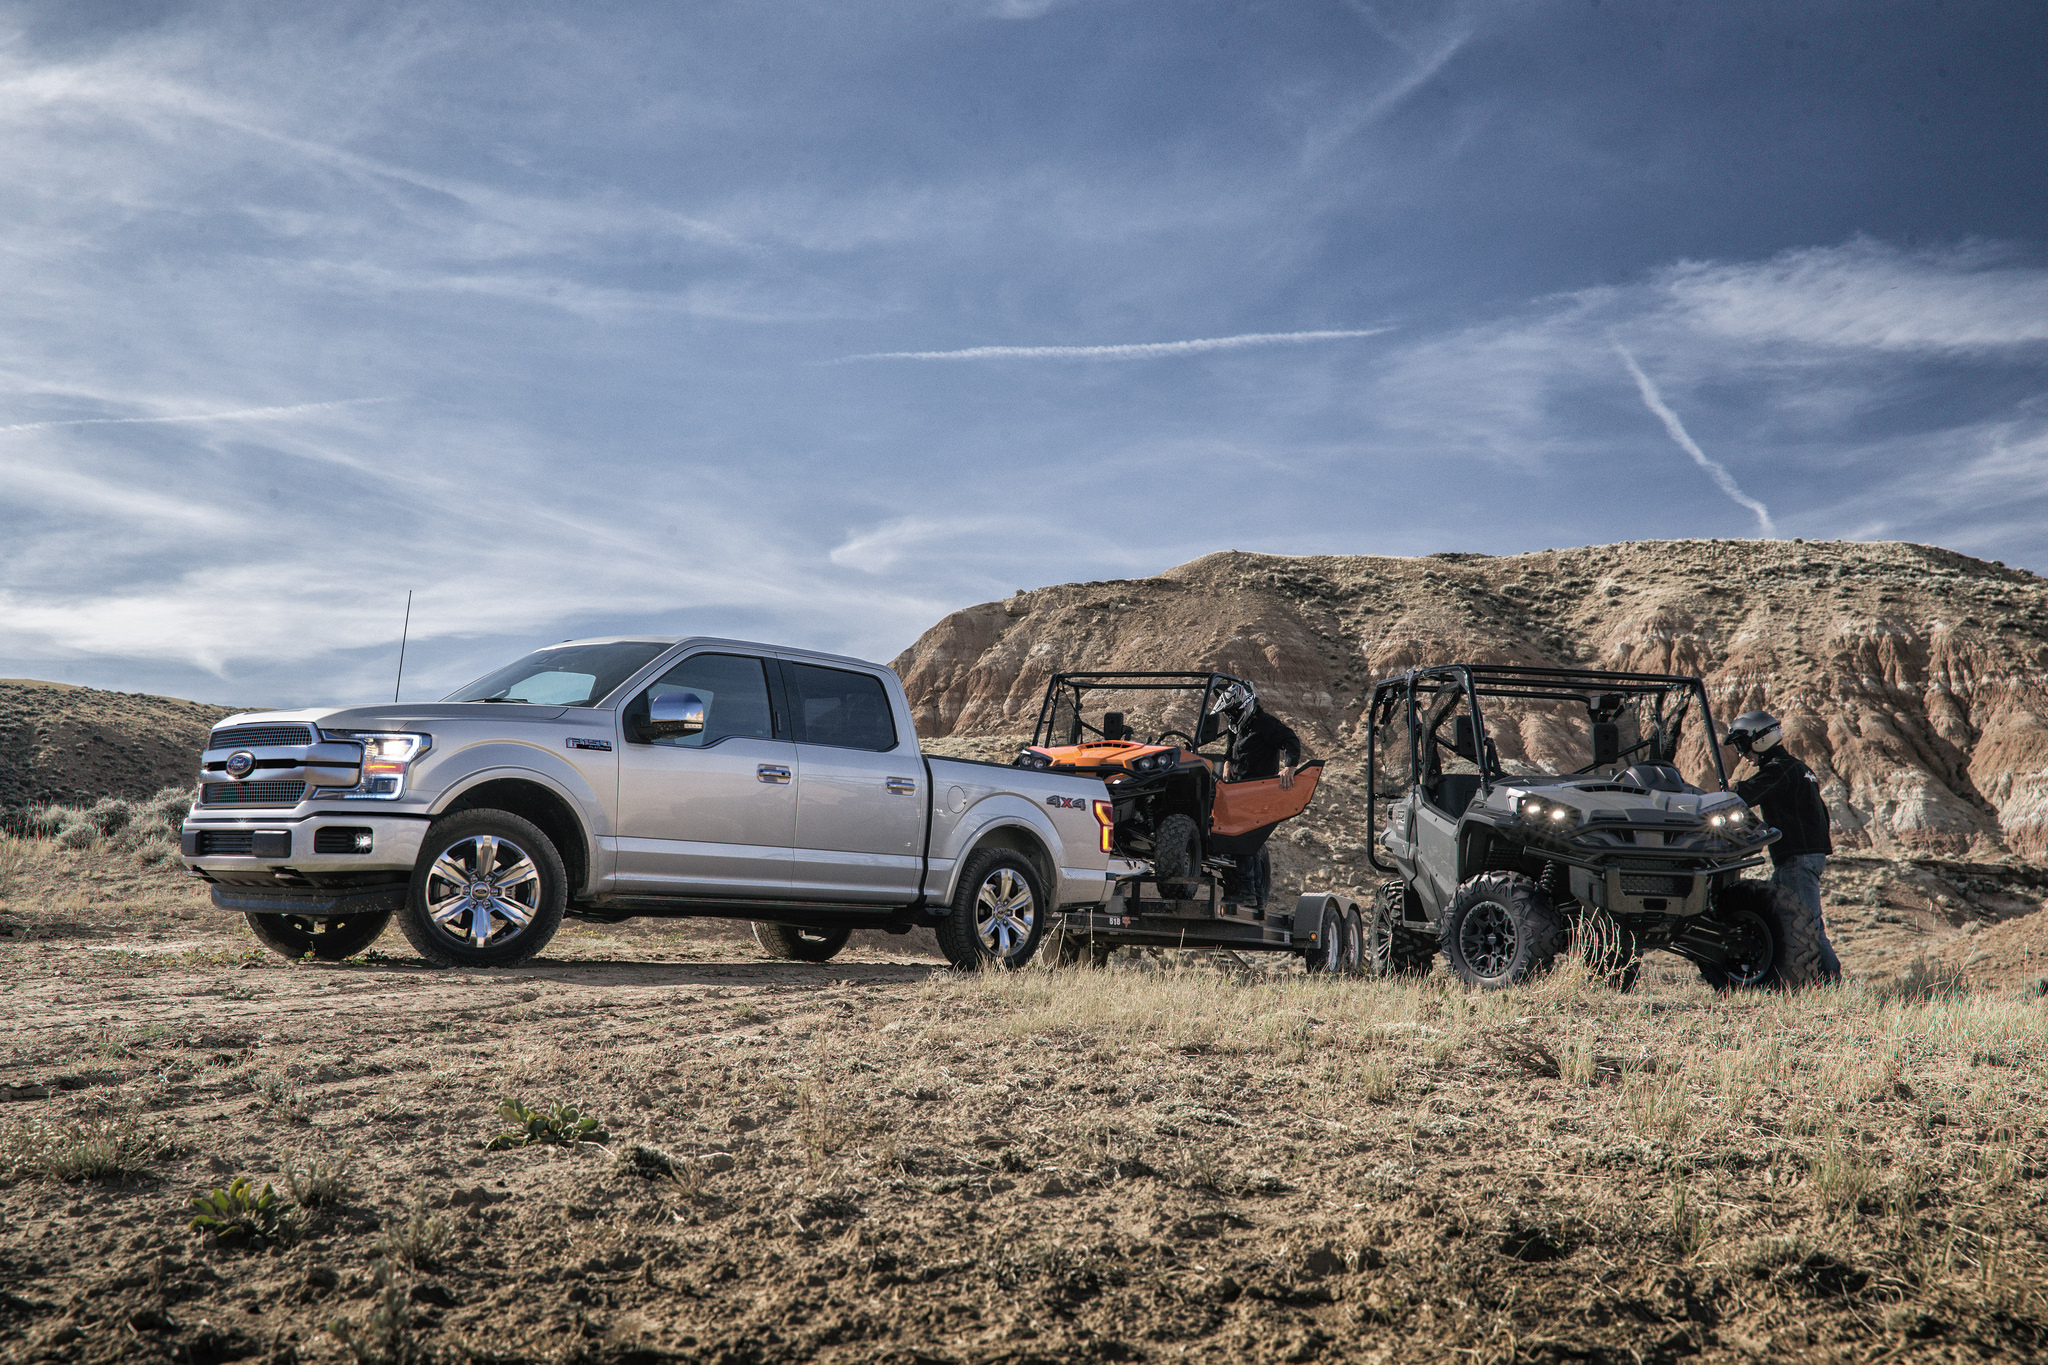 Tips for Memorial Day Camping with a Ford F-150